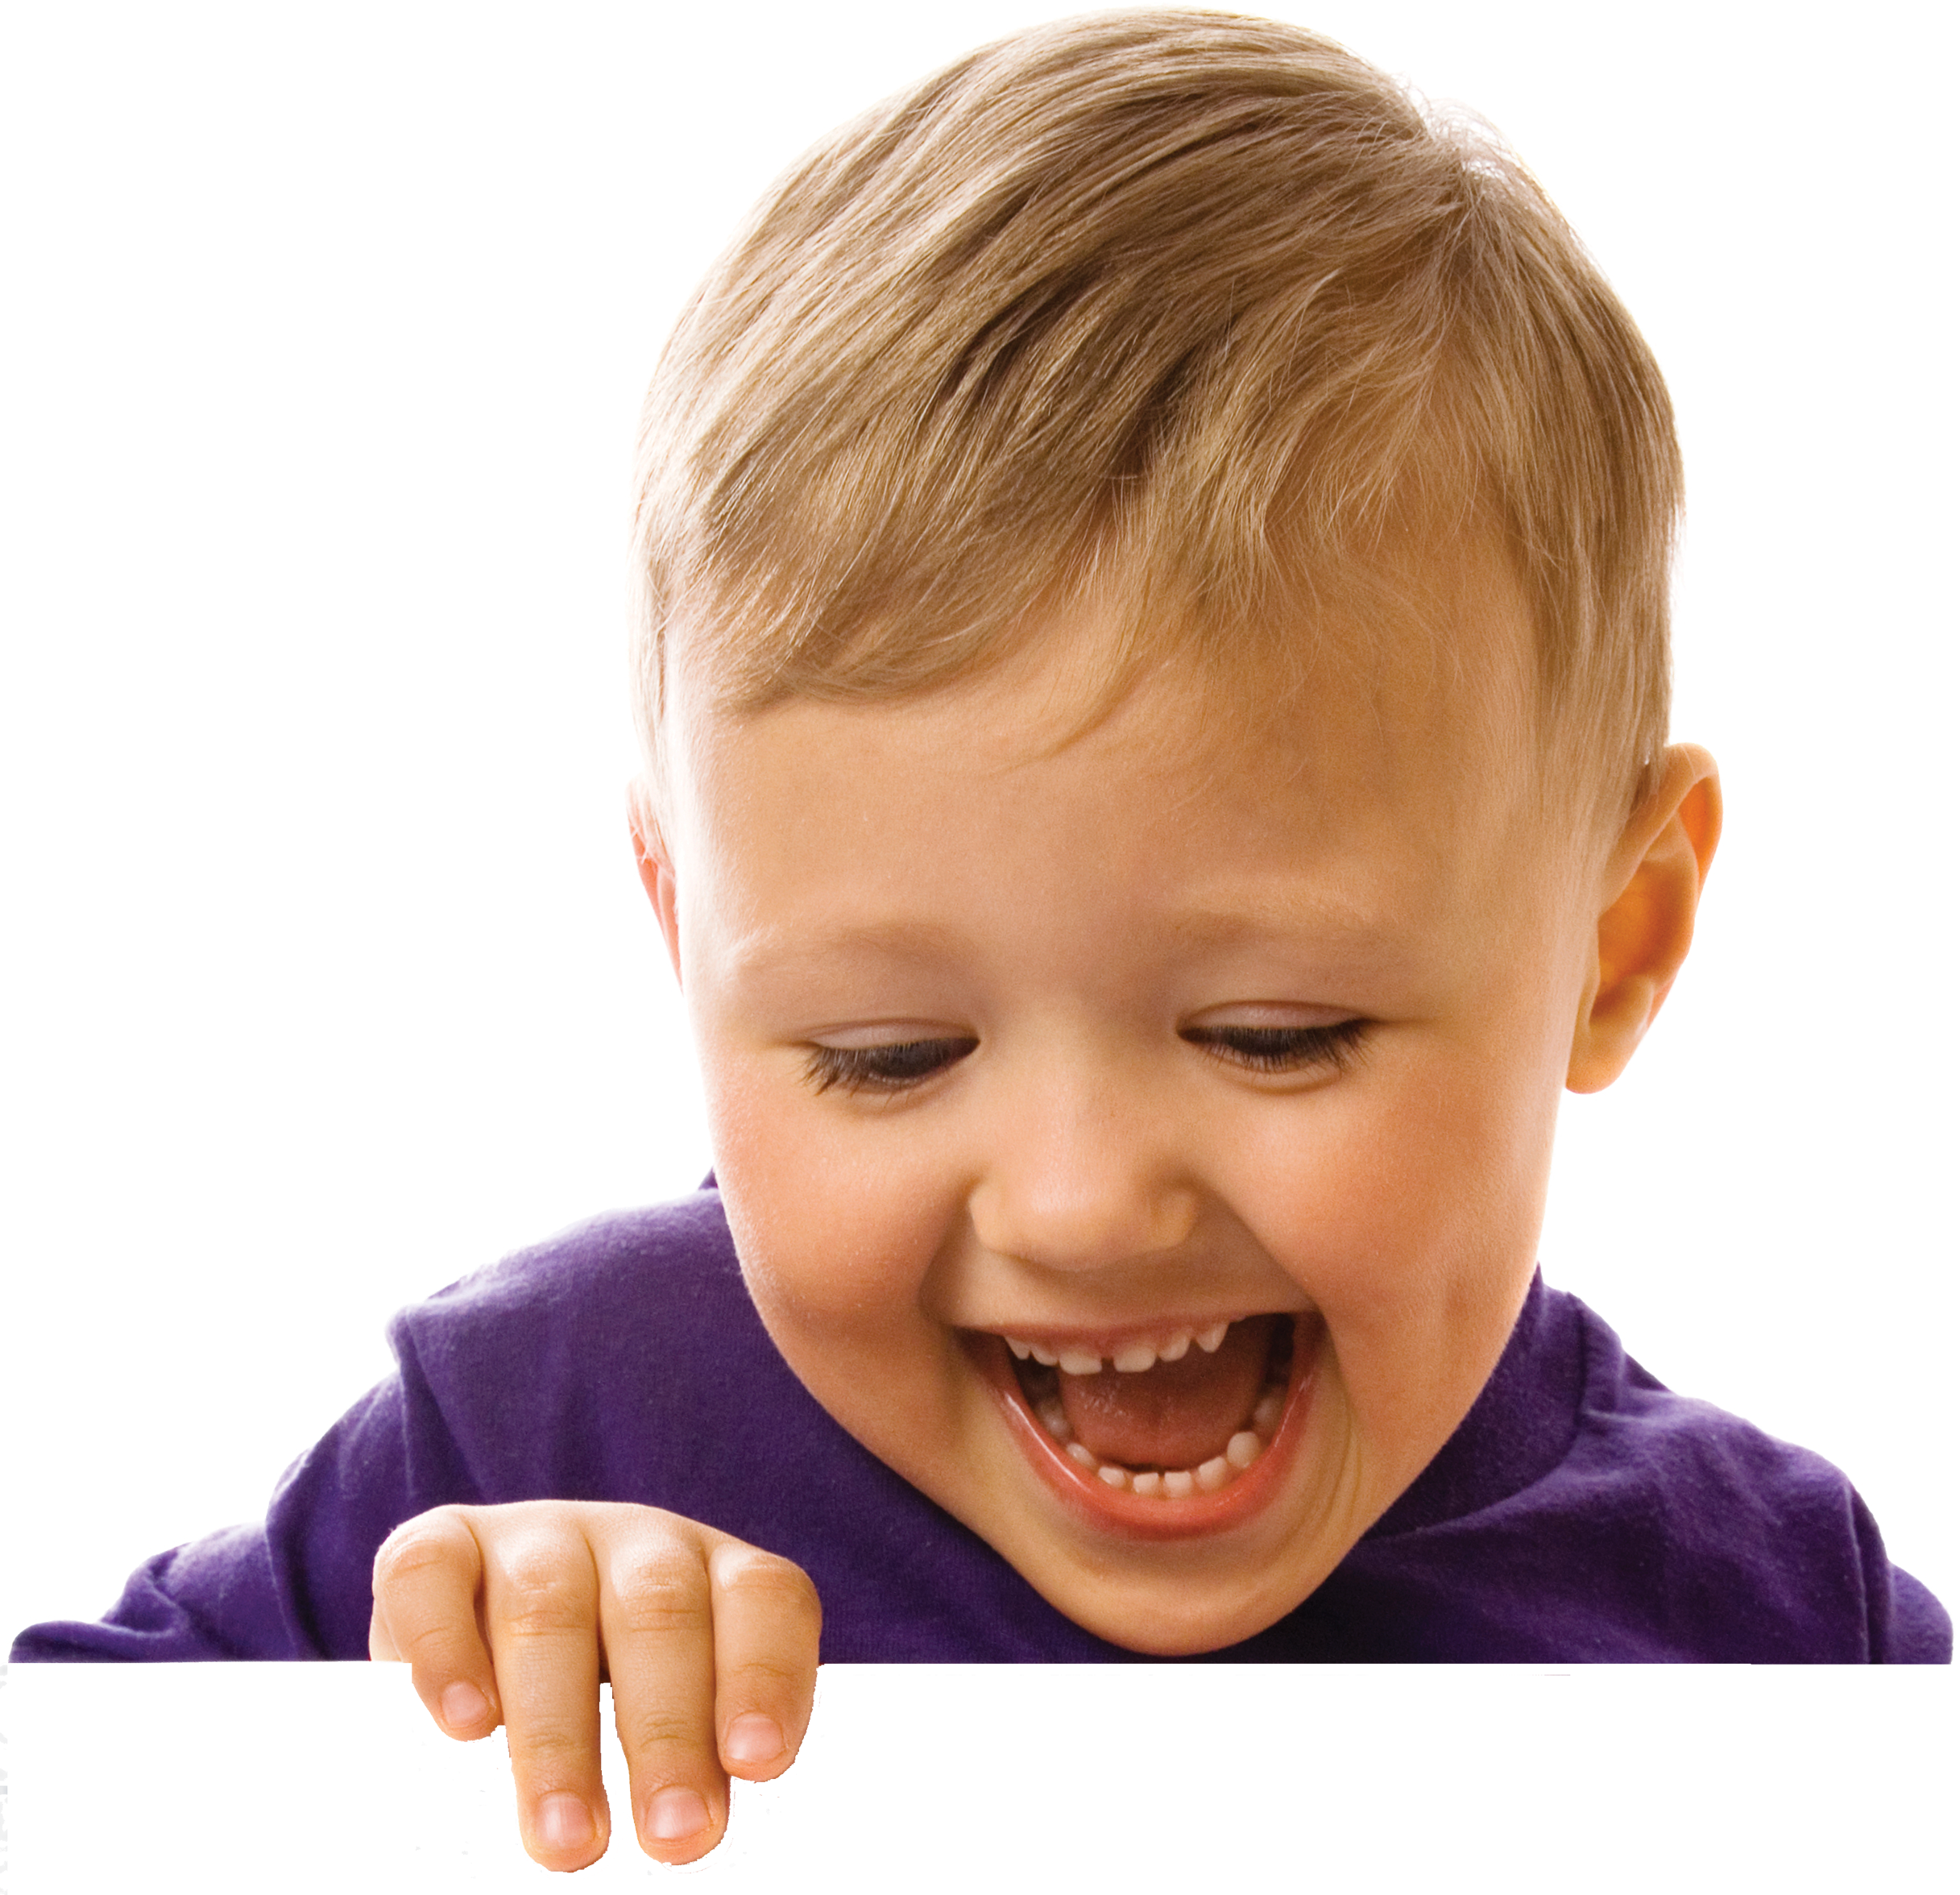 Child Png Free Child Png Transparent Images 137 Pngio